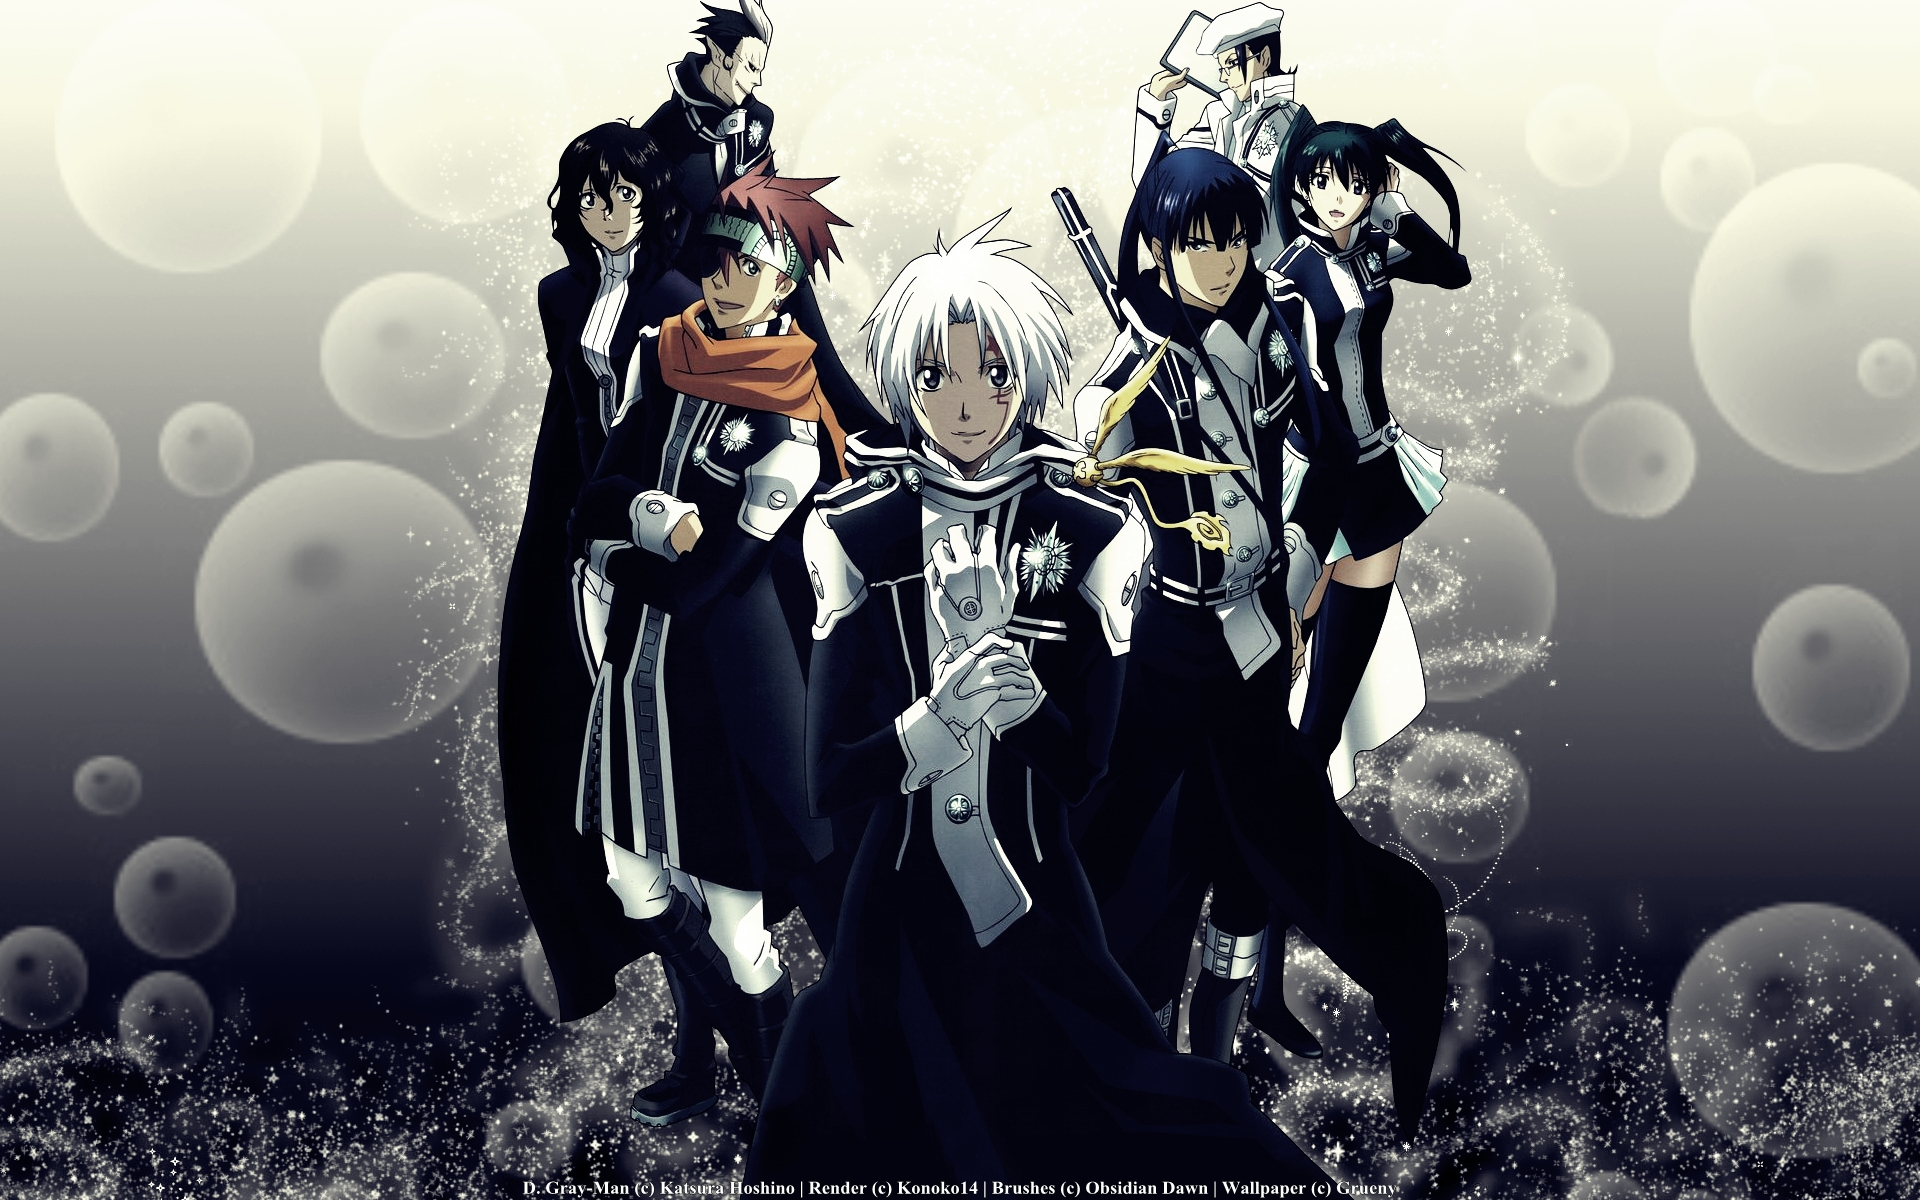 D Gray Man Wallpaper Hd 29 Anime Wallpaper Animewp Com